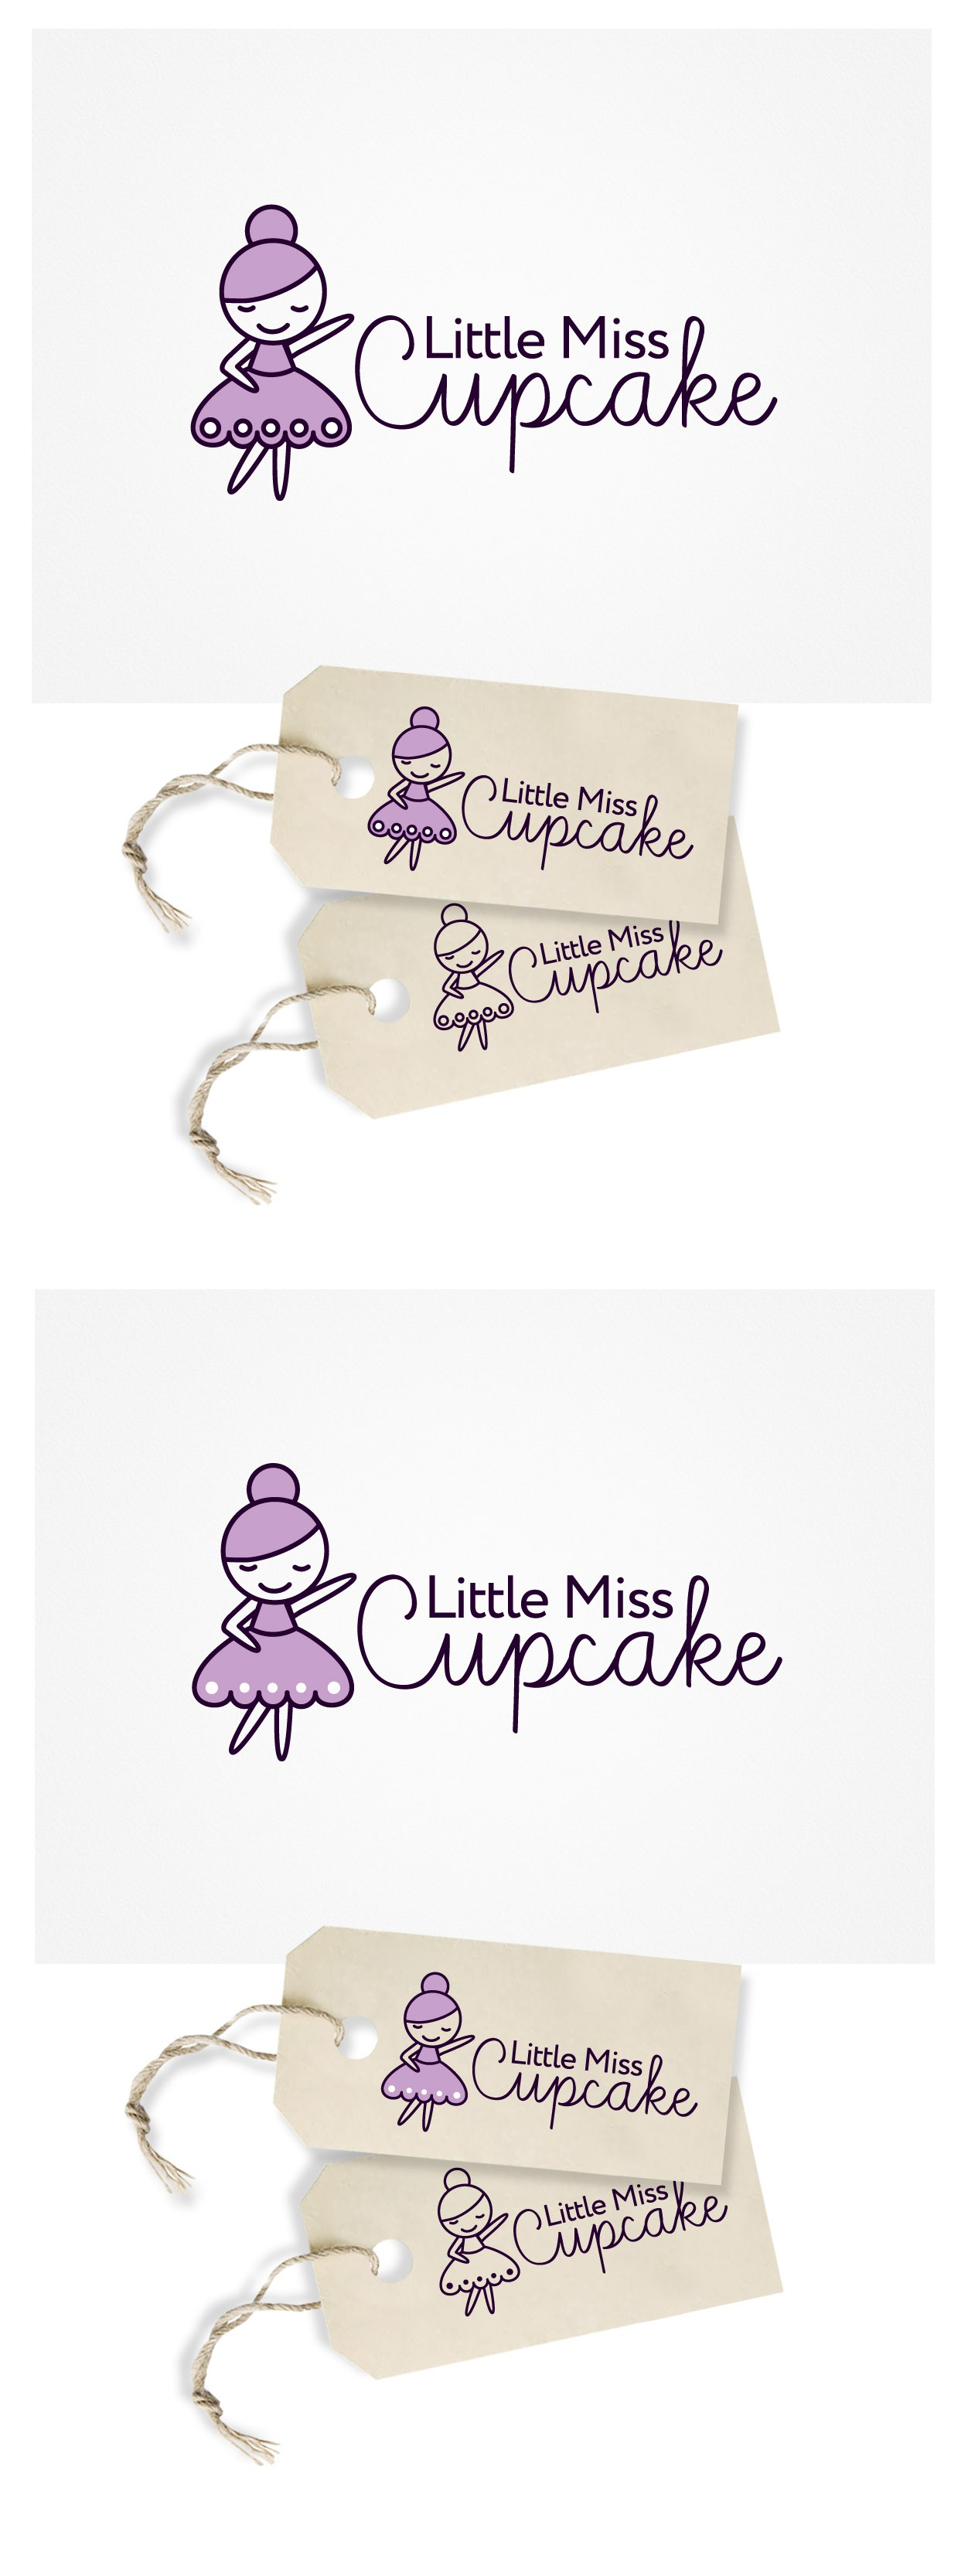 Create a logo incorporating a dress and cupcake for Little Miss Cupcake